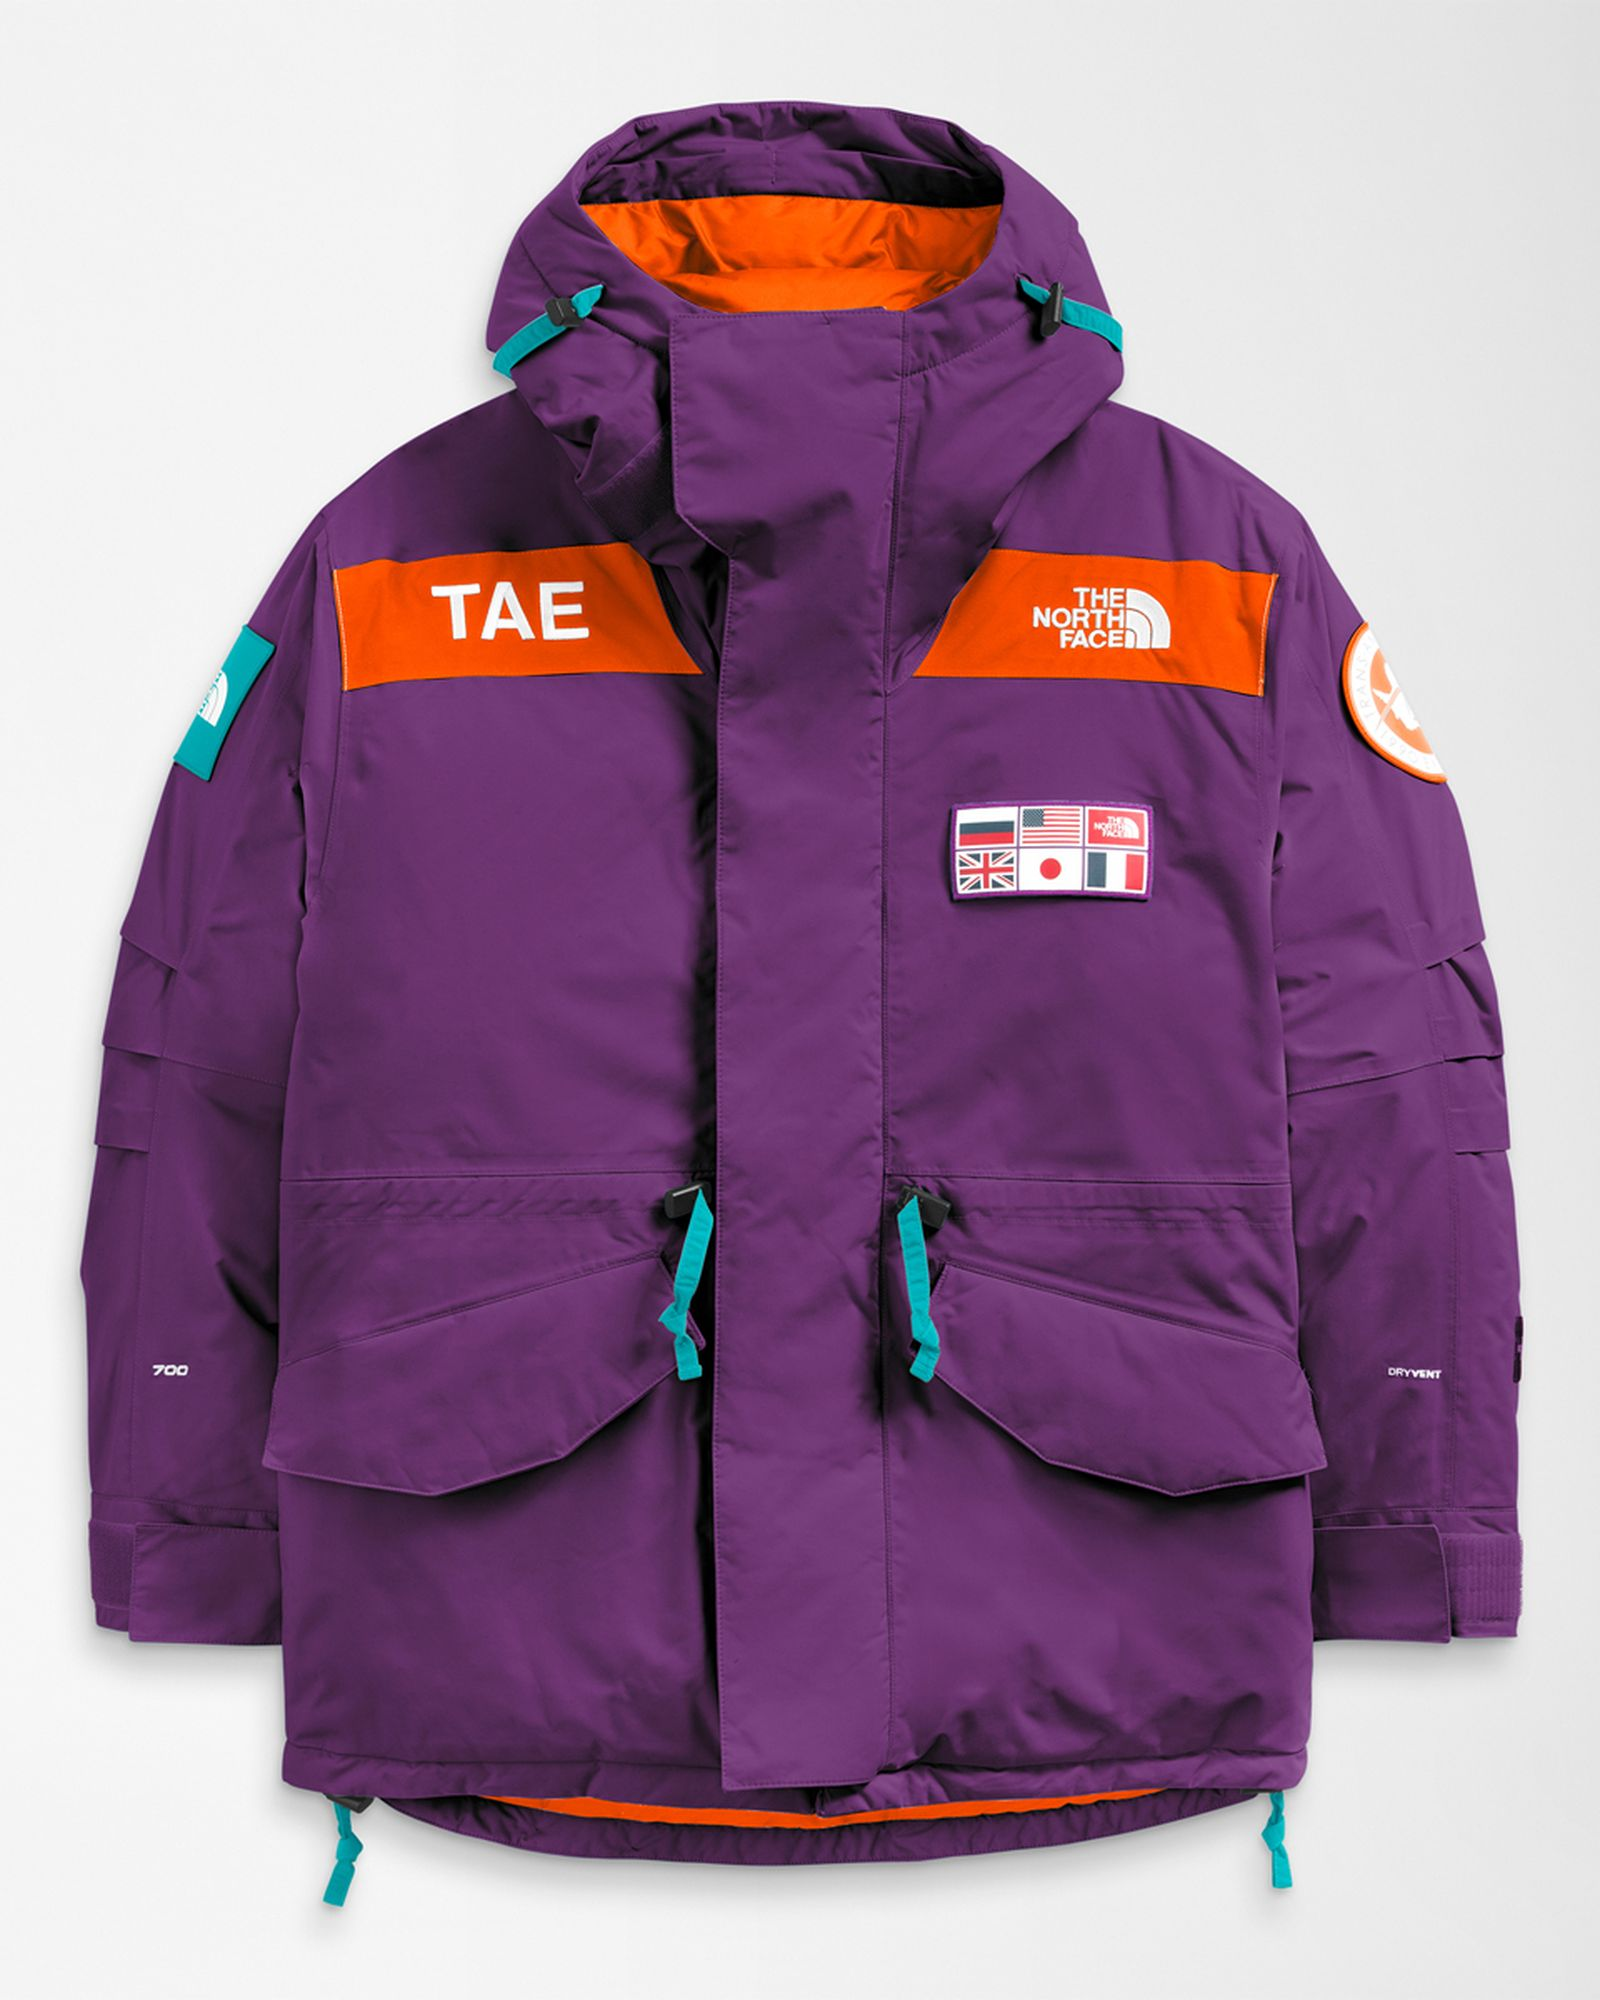 the-north-face-trans-antarctica-collection (14)